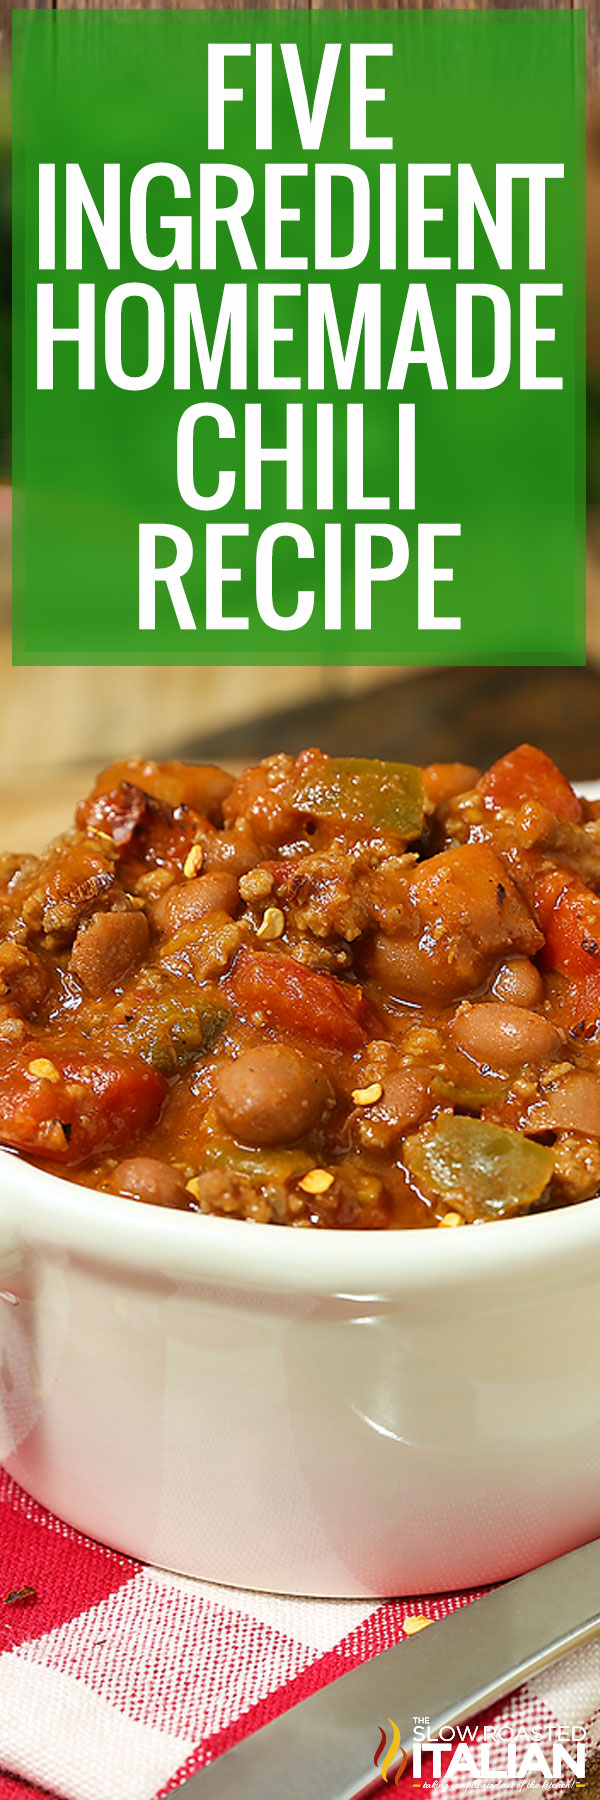 Title text (shown in a bowl): 5 Ingredient Homemade Chili Recipe